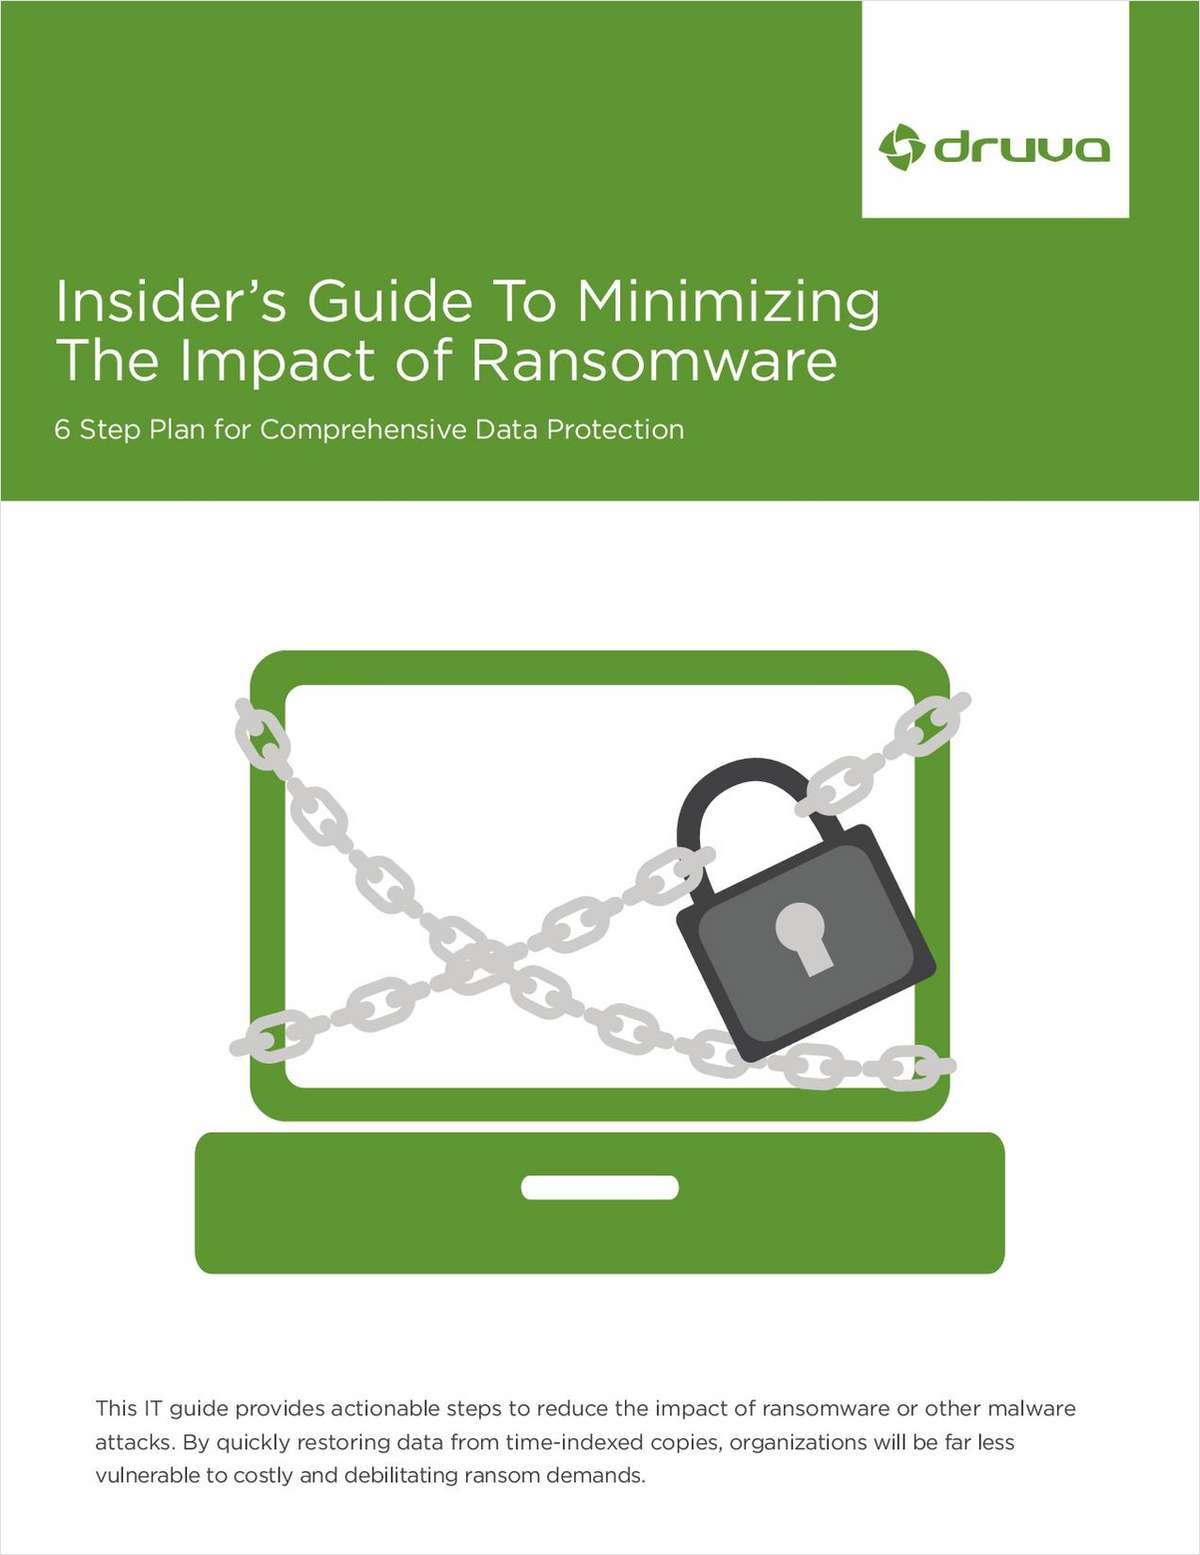 Insider's Guide To Minimizing The Impact of Ransomware: 6 Step Plan for Comprehensive Data Protection